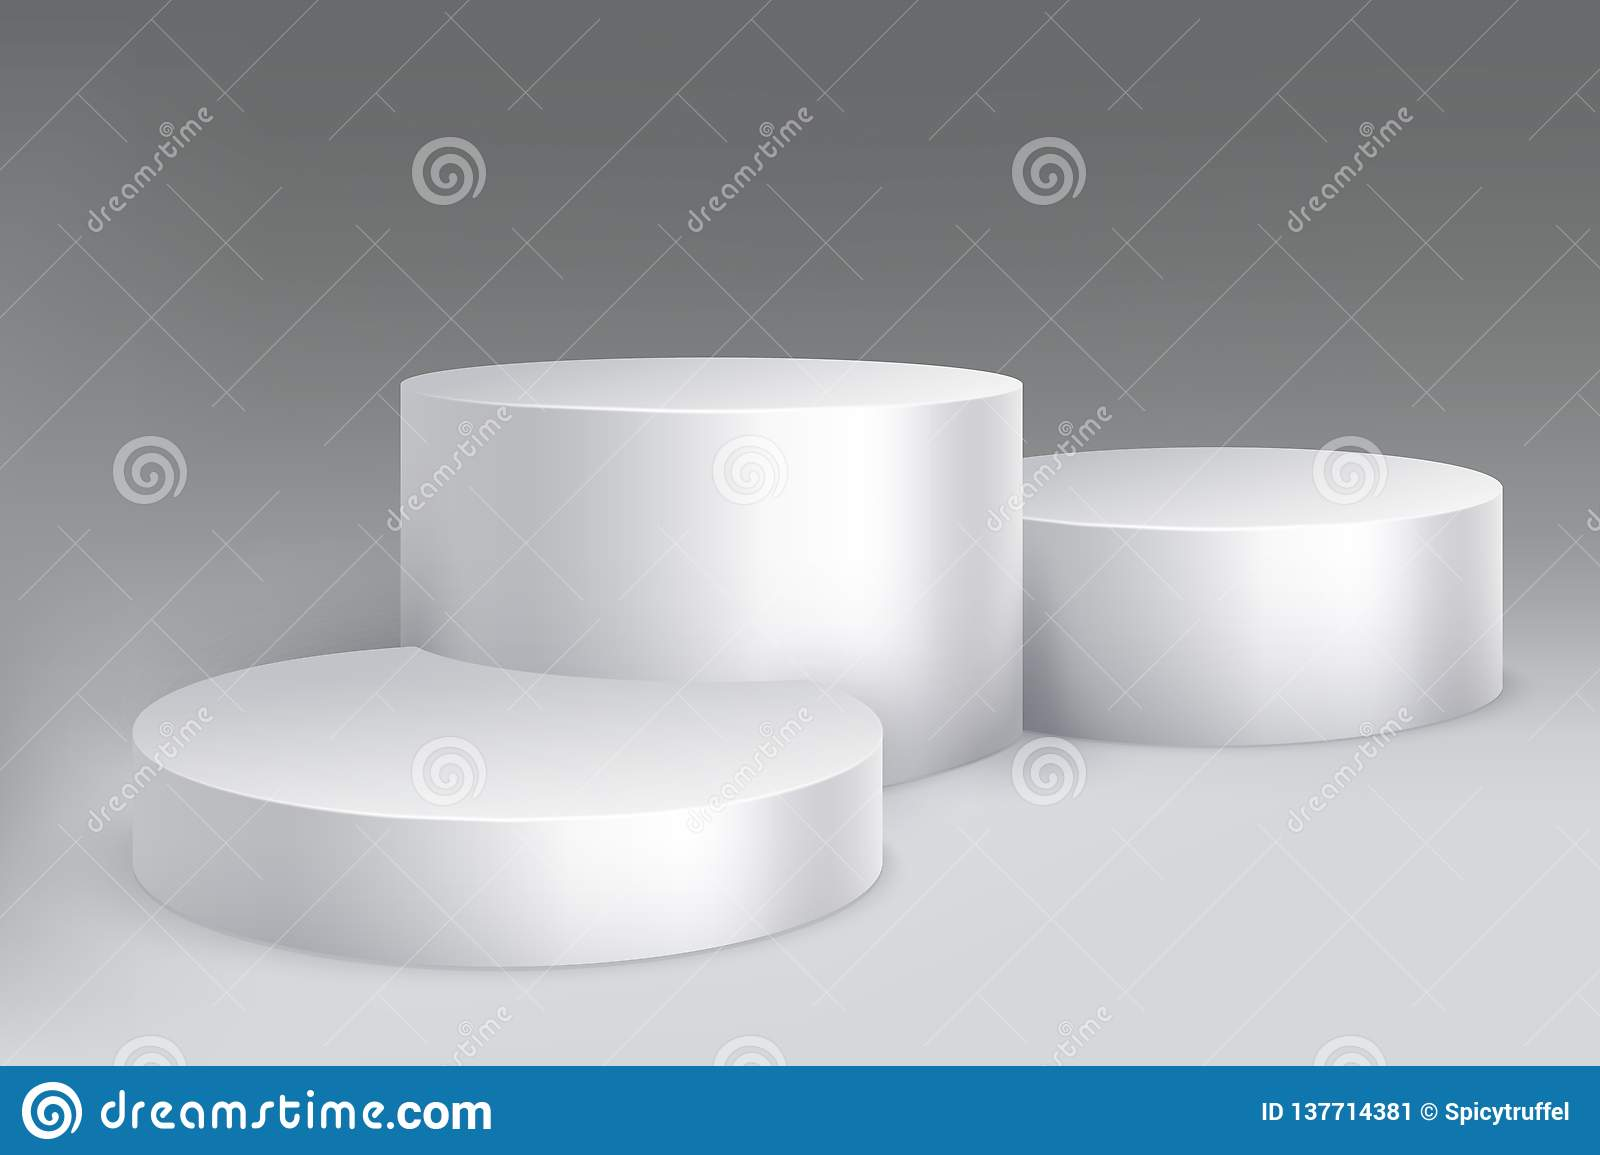 Studio podium. Marble stand pillar base, pedestal with cylinders. Empty white exposition showroom isolated mockup